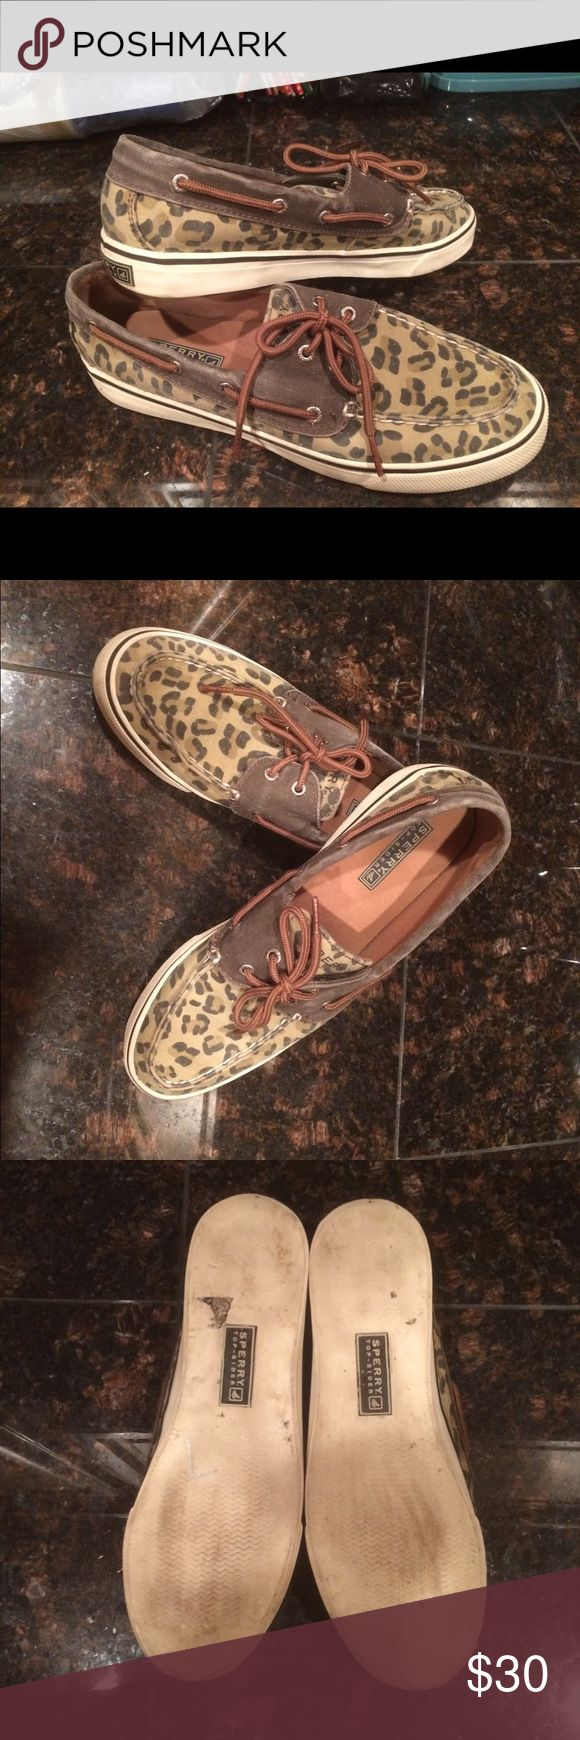 *FLASH SALE*   Sperry Top-Siders  Adorable animal print! Perfect for that weekend at the beach!  Sperry Top-Sider Shoes